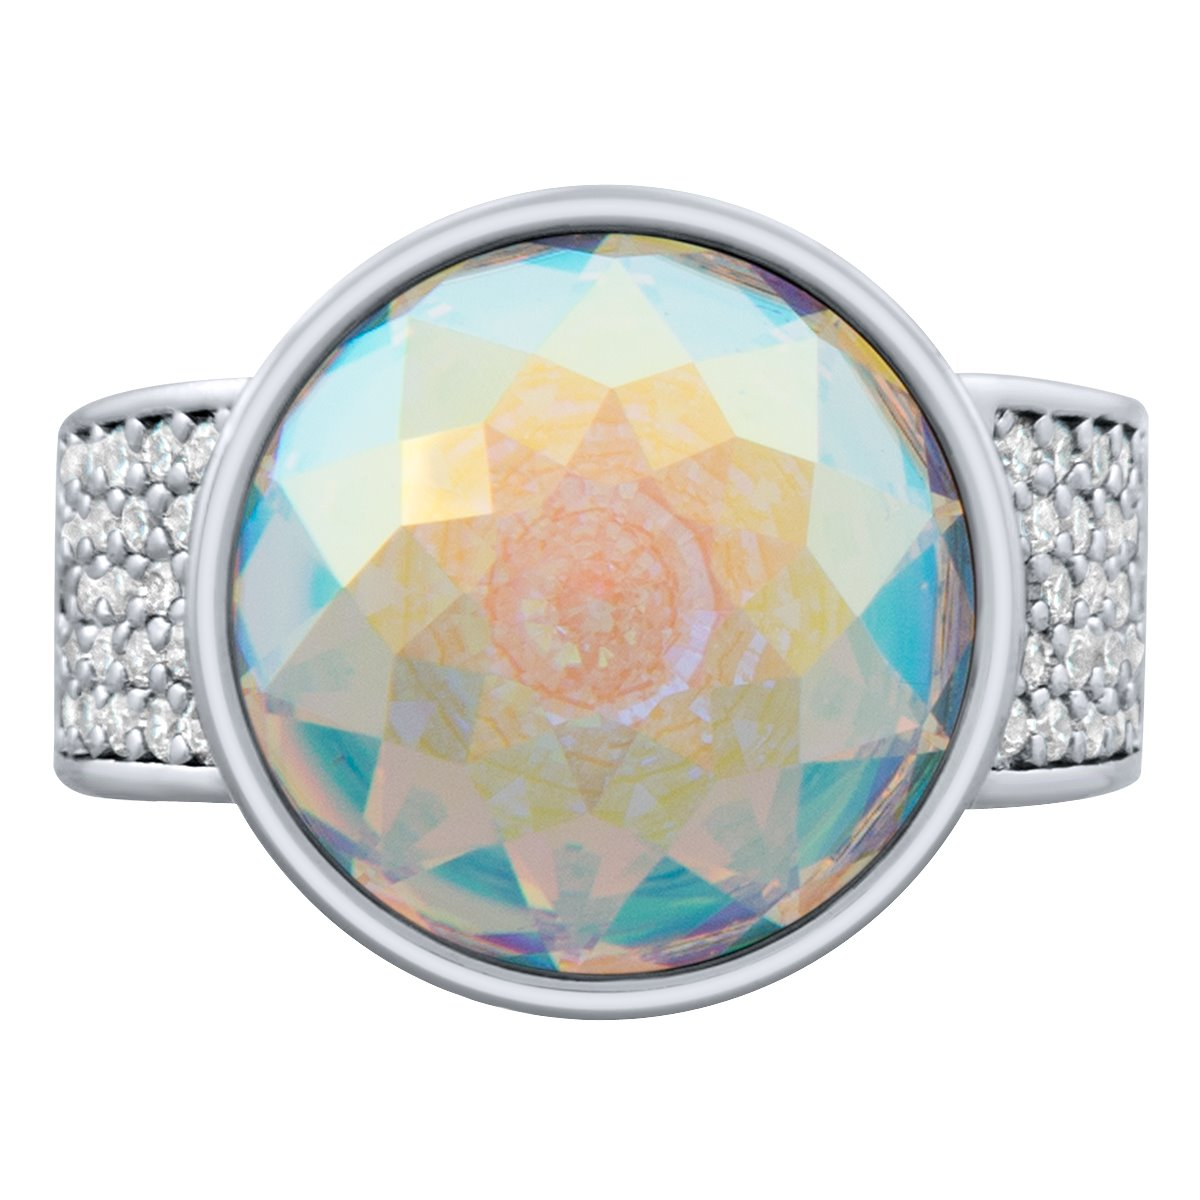 Elysees Ring Silver Aurora Borealis JOY OF SPARKLE FOREVER CRYSTALS